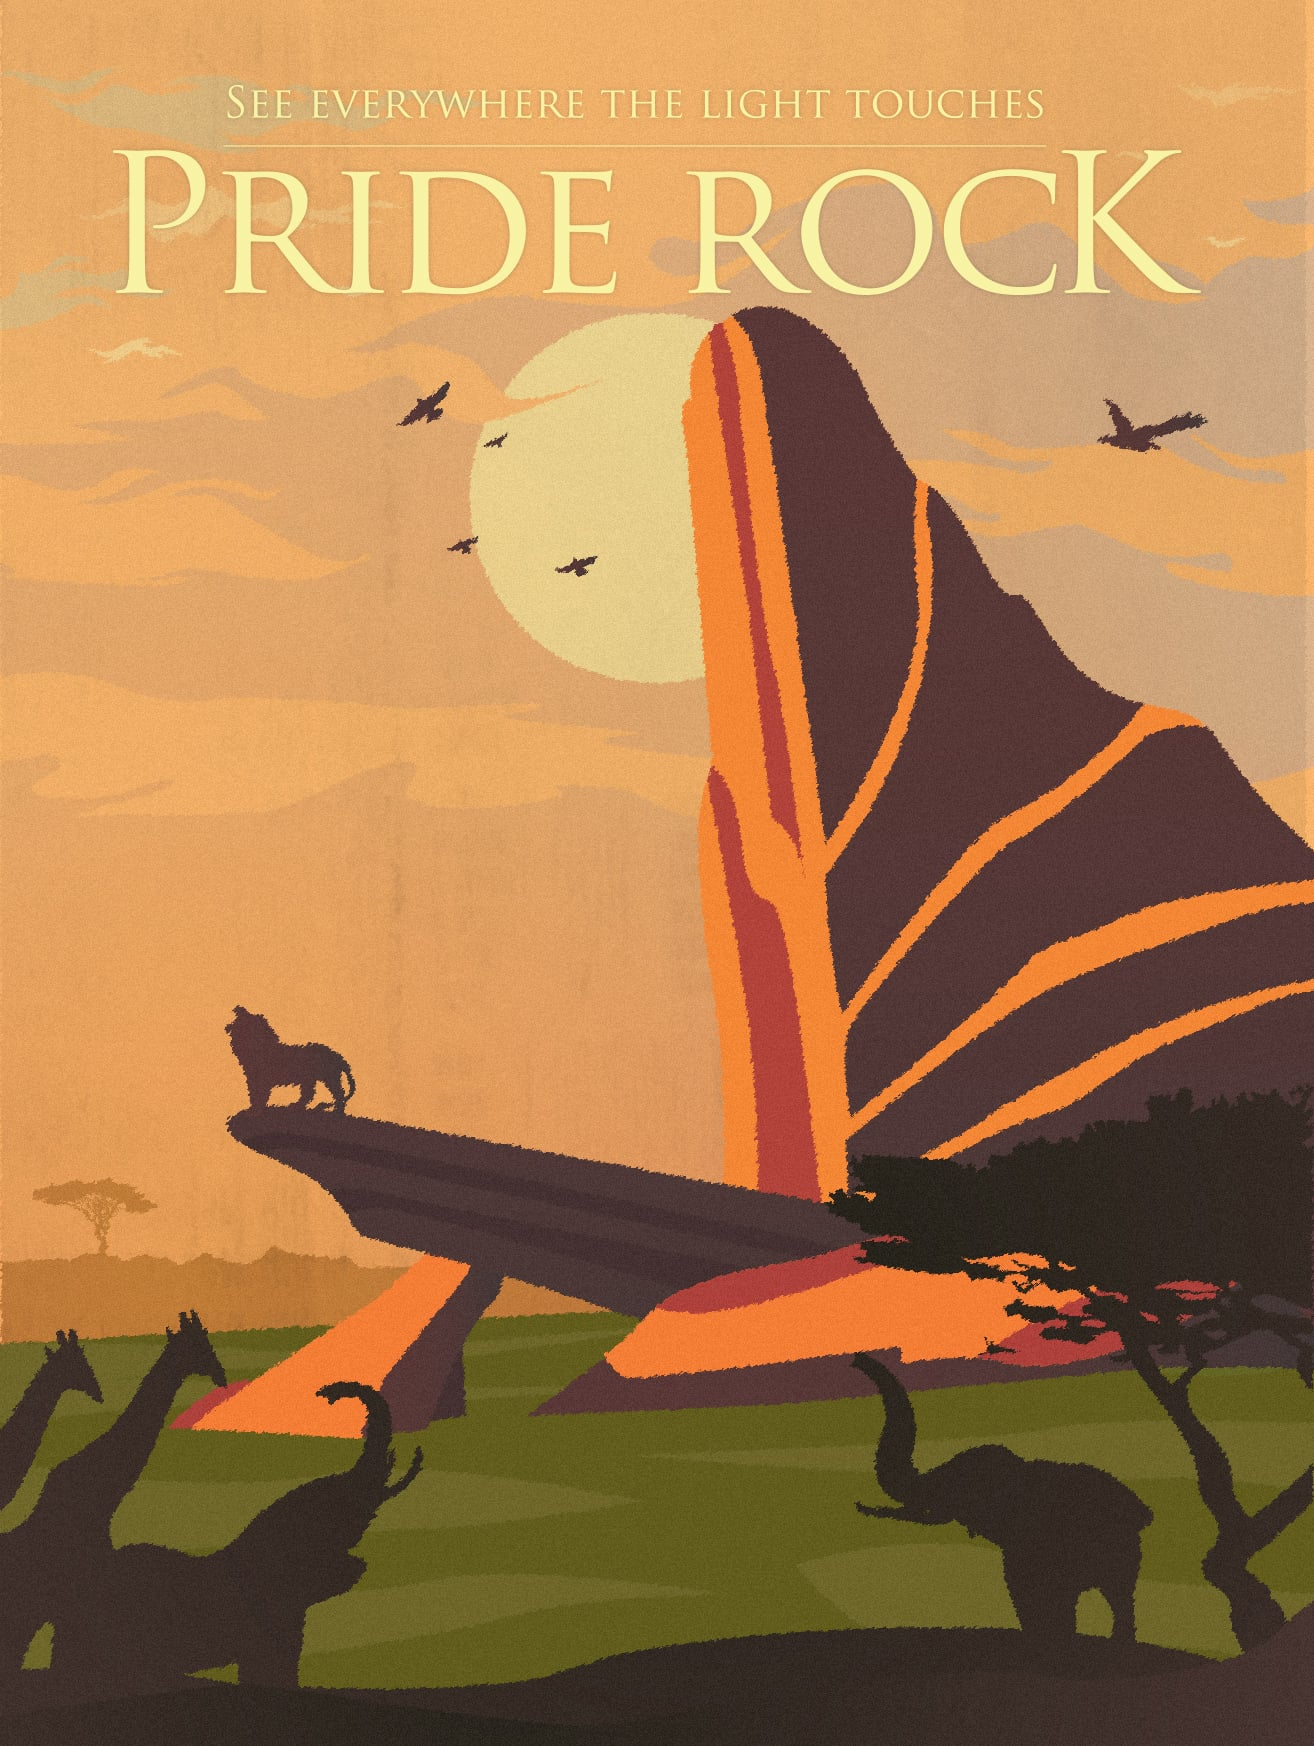 Pride Rock The Lion King These Disney Vintage Travel Posters Have Me Ready To Discover A Whole New World Popsugar Smart Living Photo 2